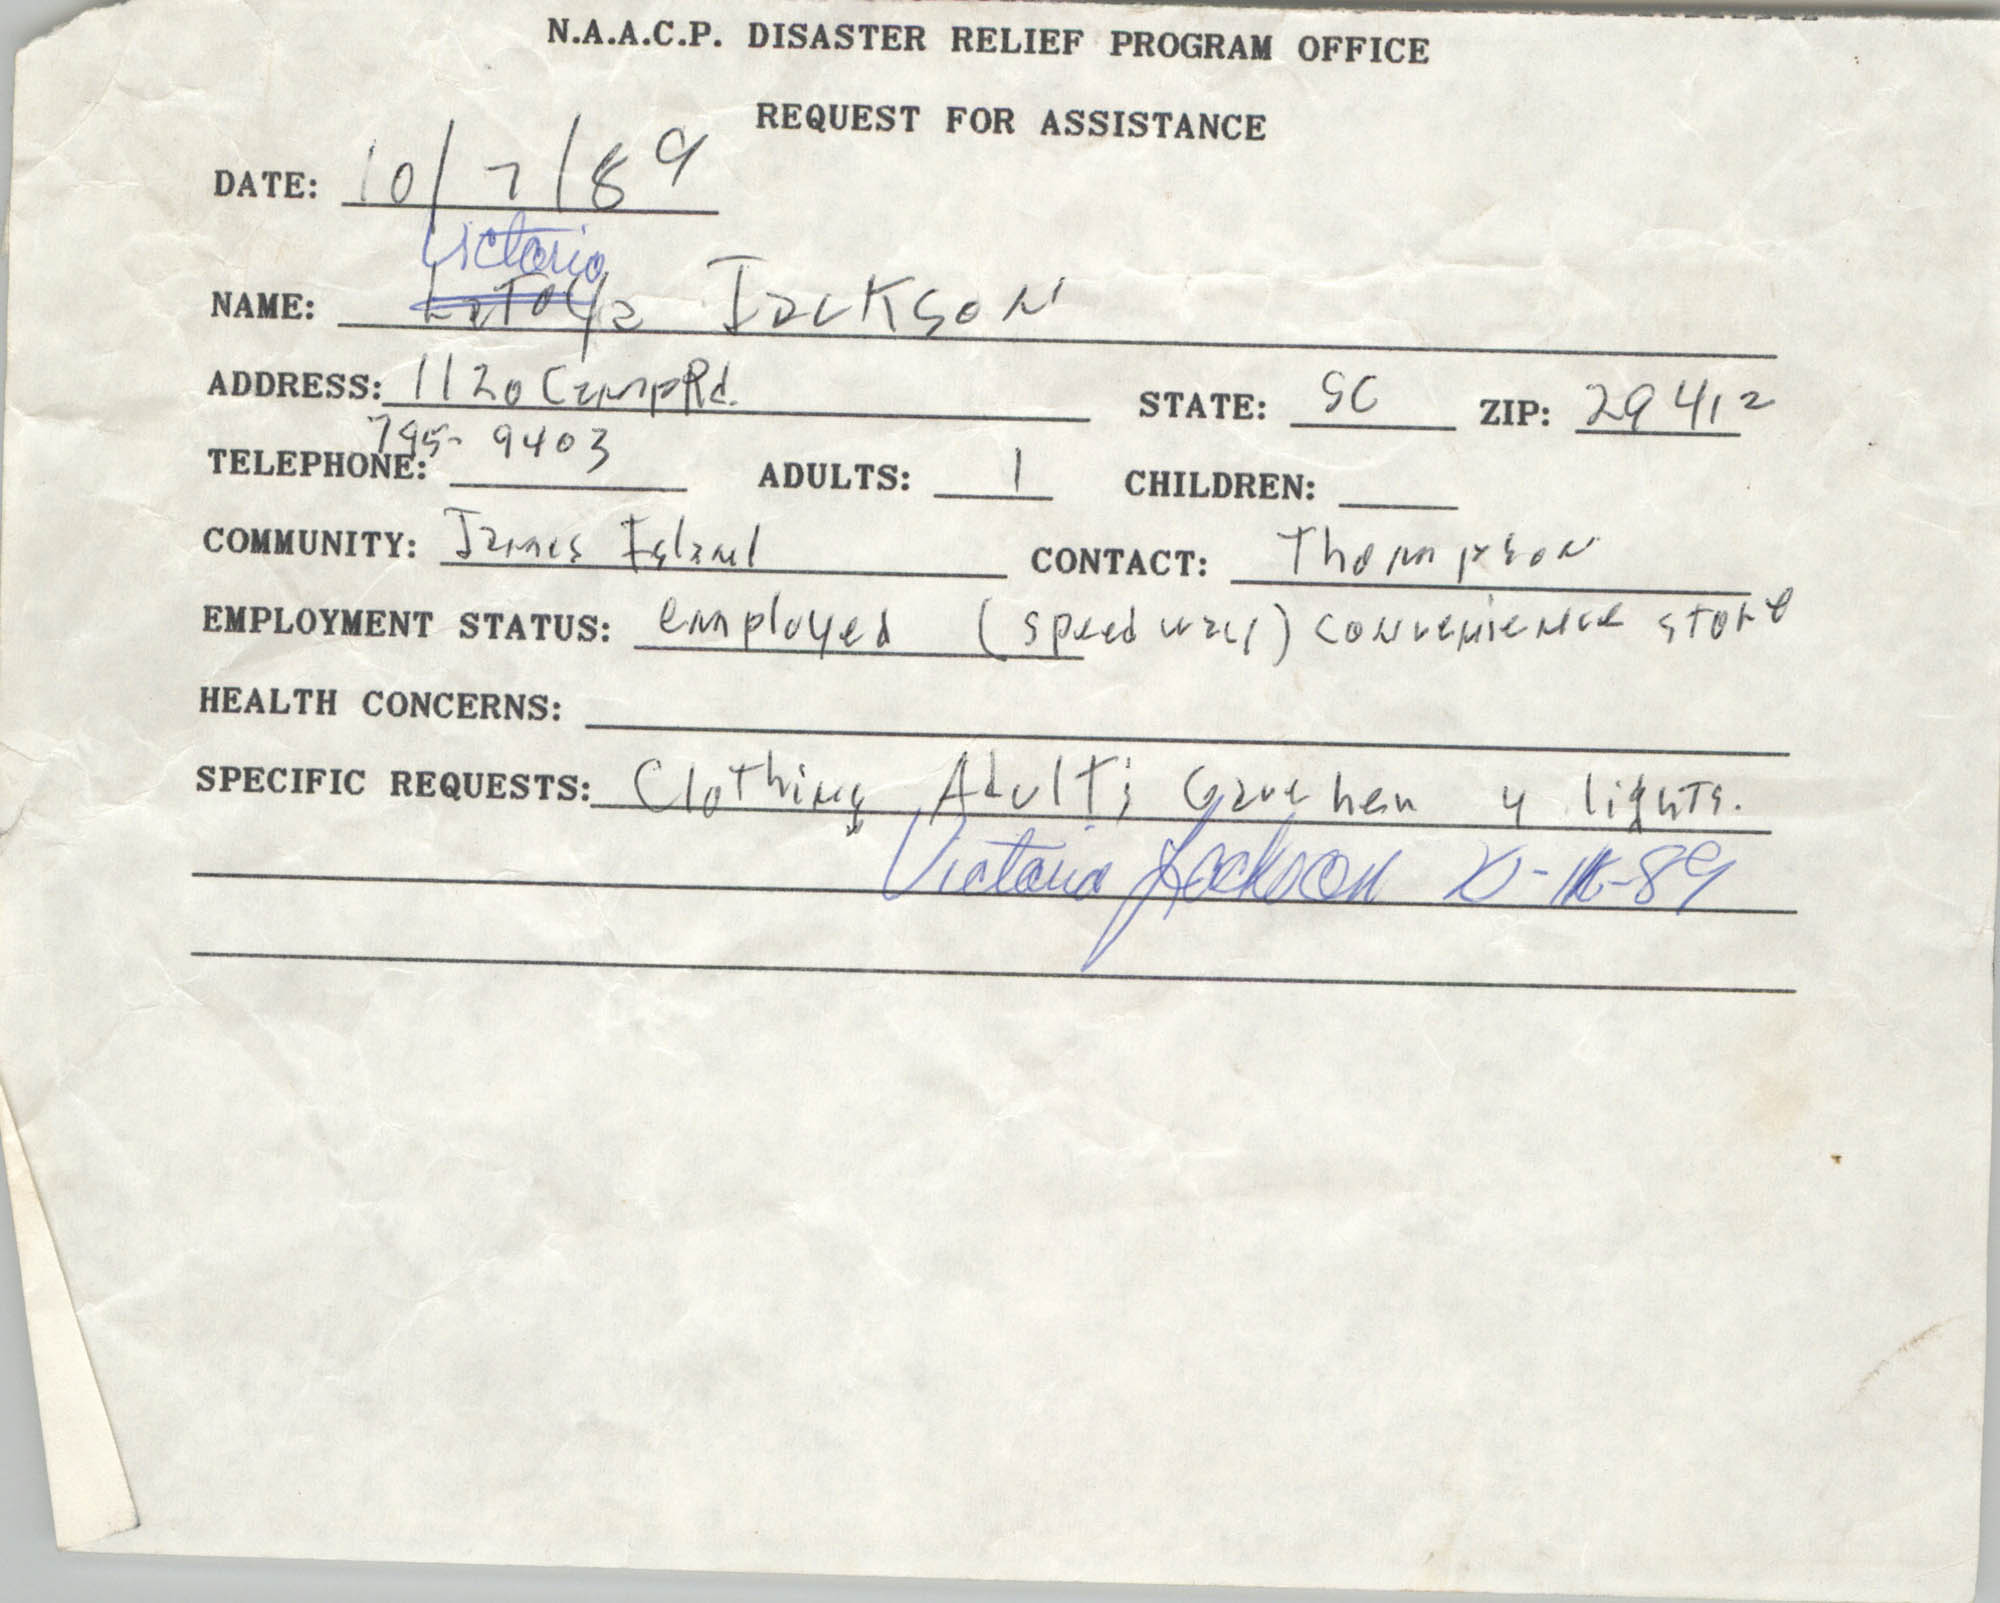 NAACP Disaster Relief Program Office, Hurricane Huge Requests for Assistance, 1989, Page 13